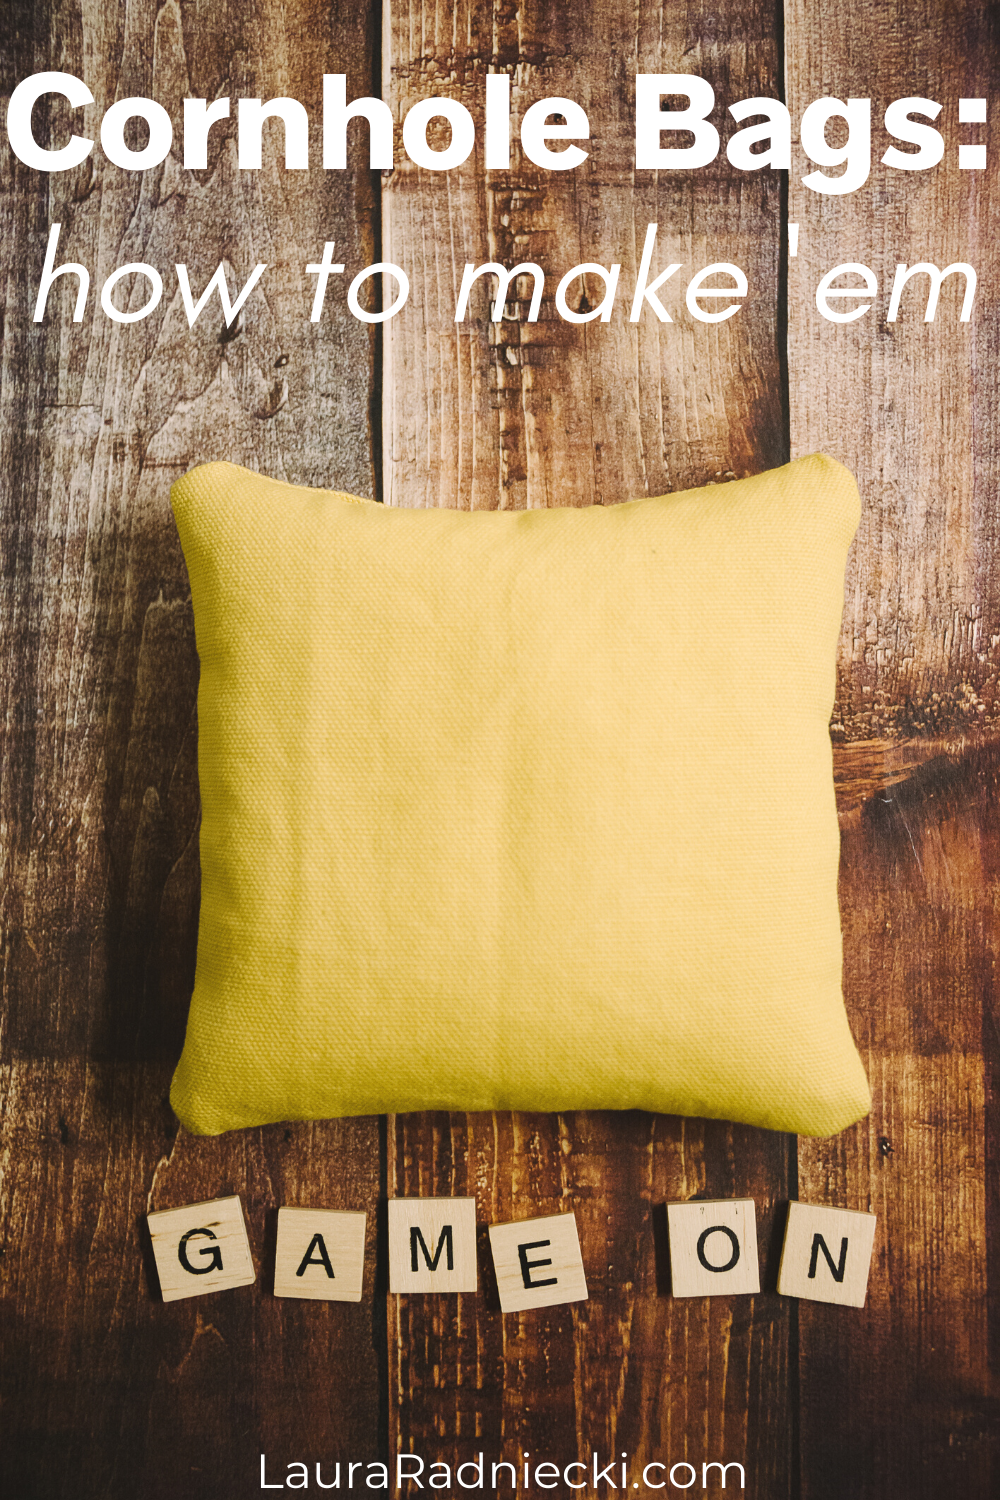 How to Make Cornhole Bags